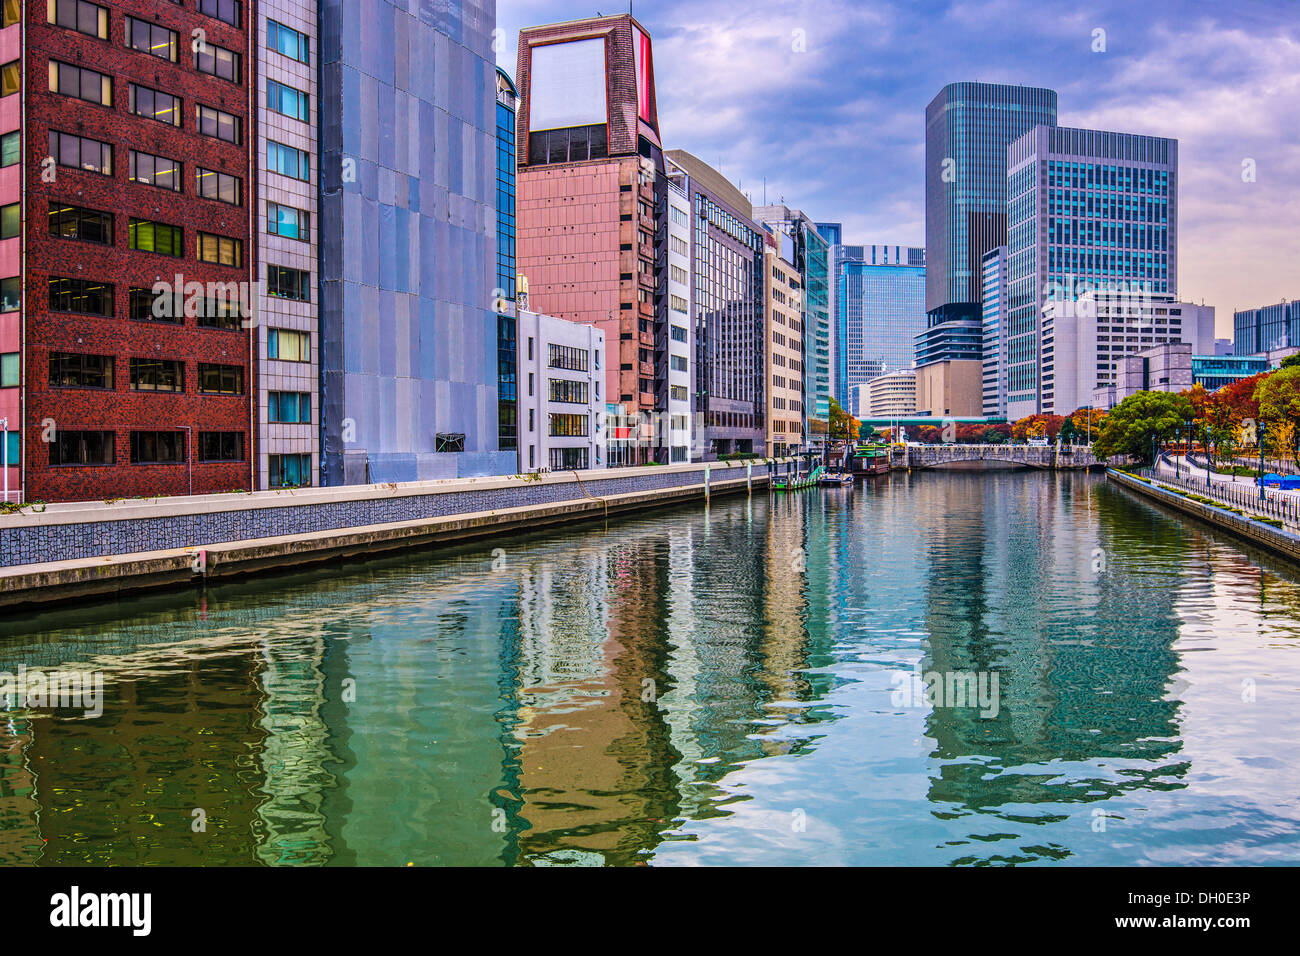 River view in Osaka, Japan. - Stock Image